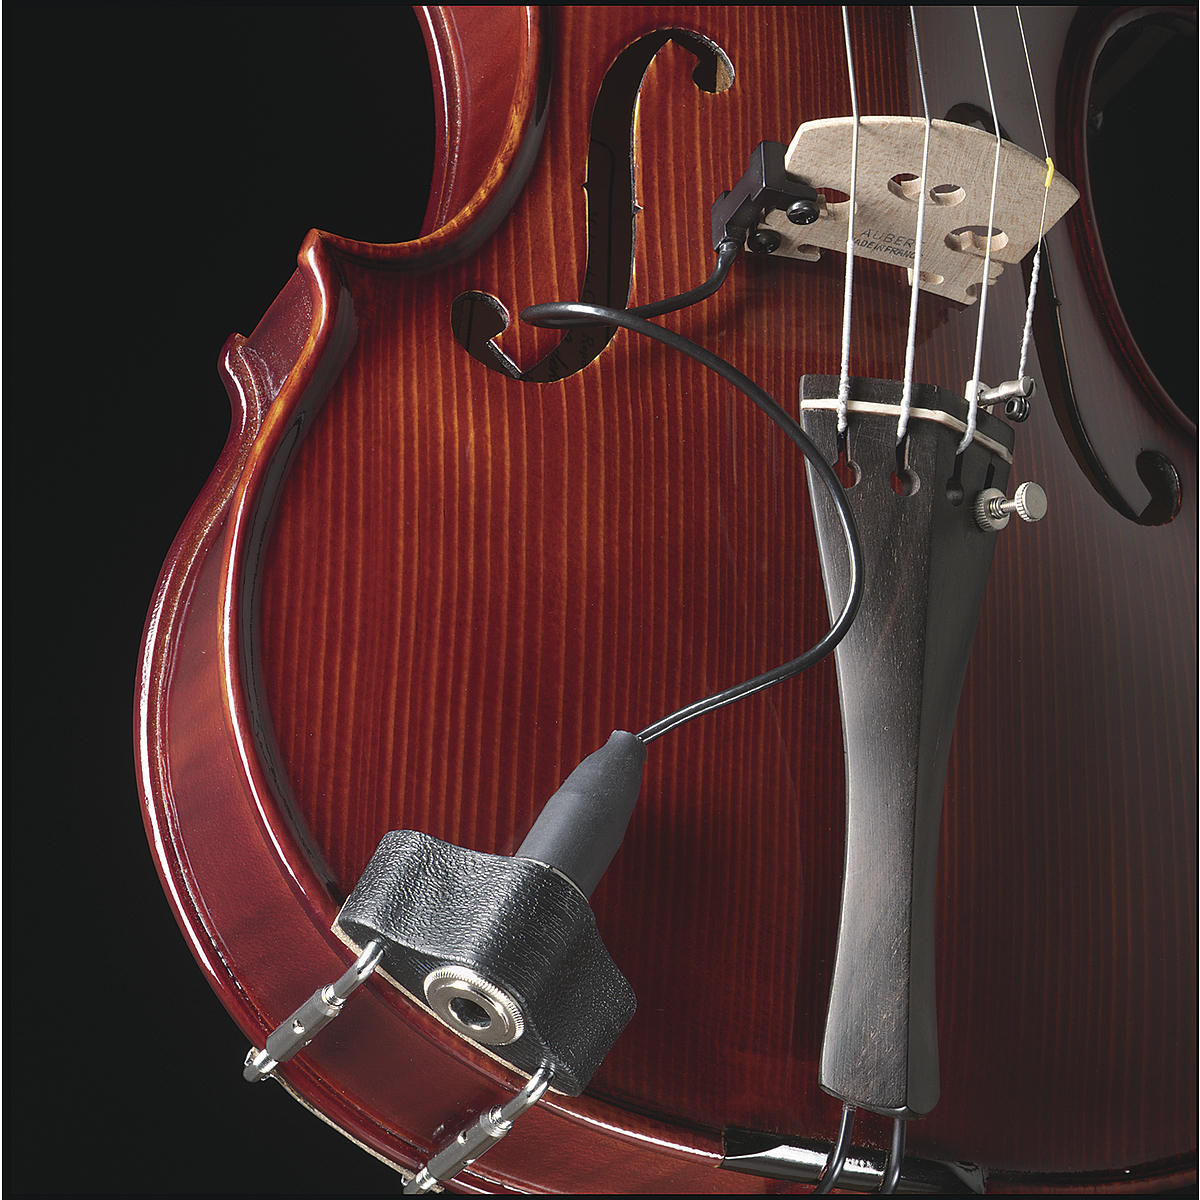 shadow sh3001 quick mount violin transducer 80 images frompo. Black Bedroom Furniture Sets. Home Design Ideas